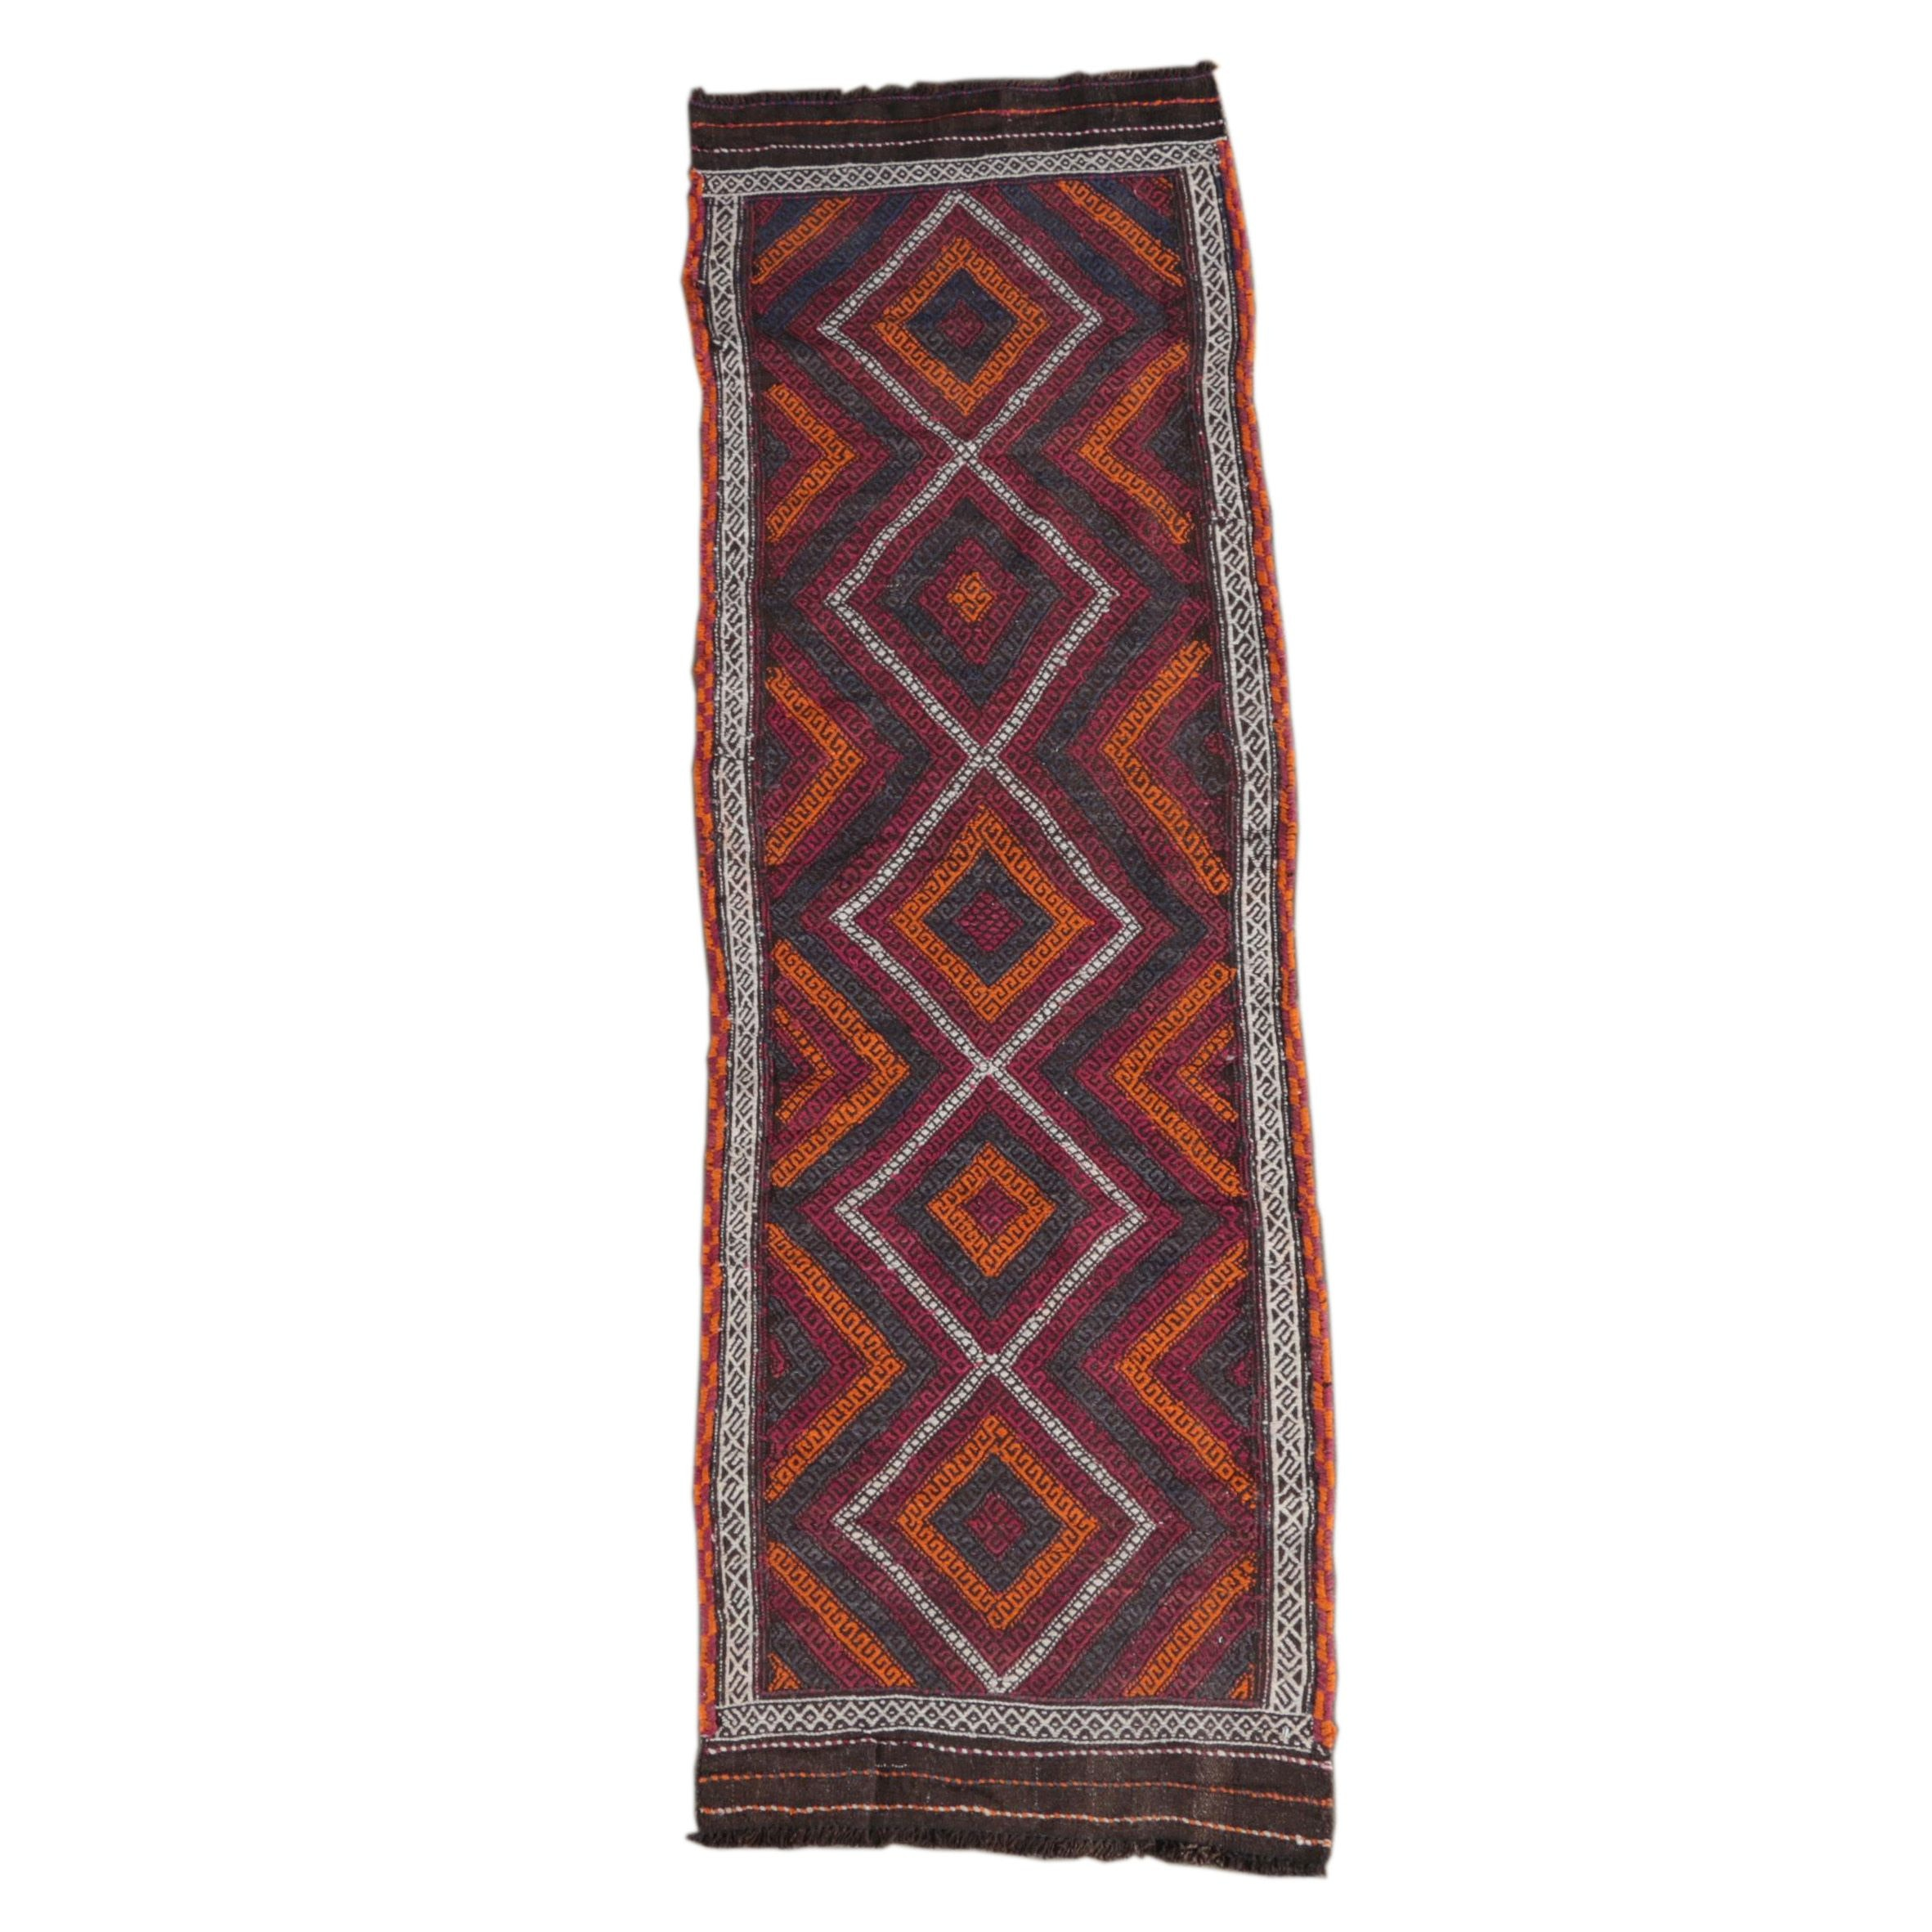 Handwoven Embroidered Baluch Carpet Runner